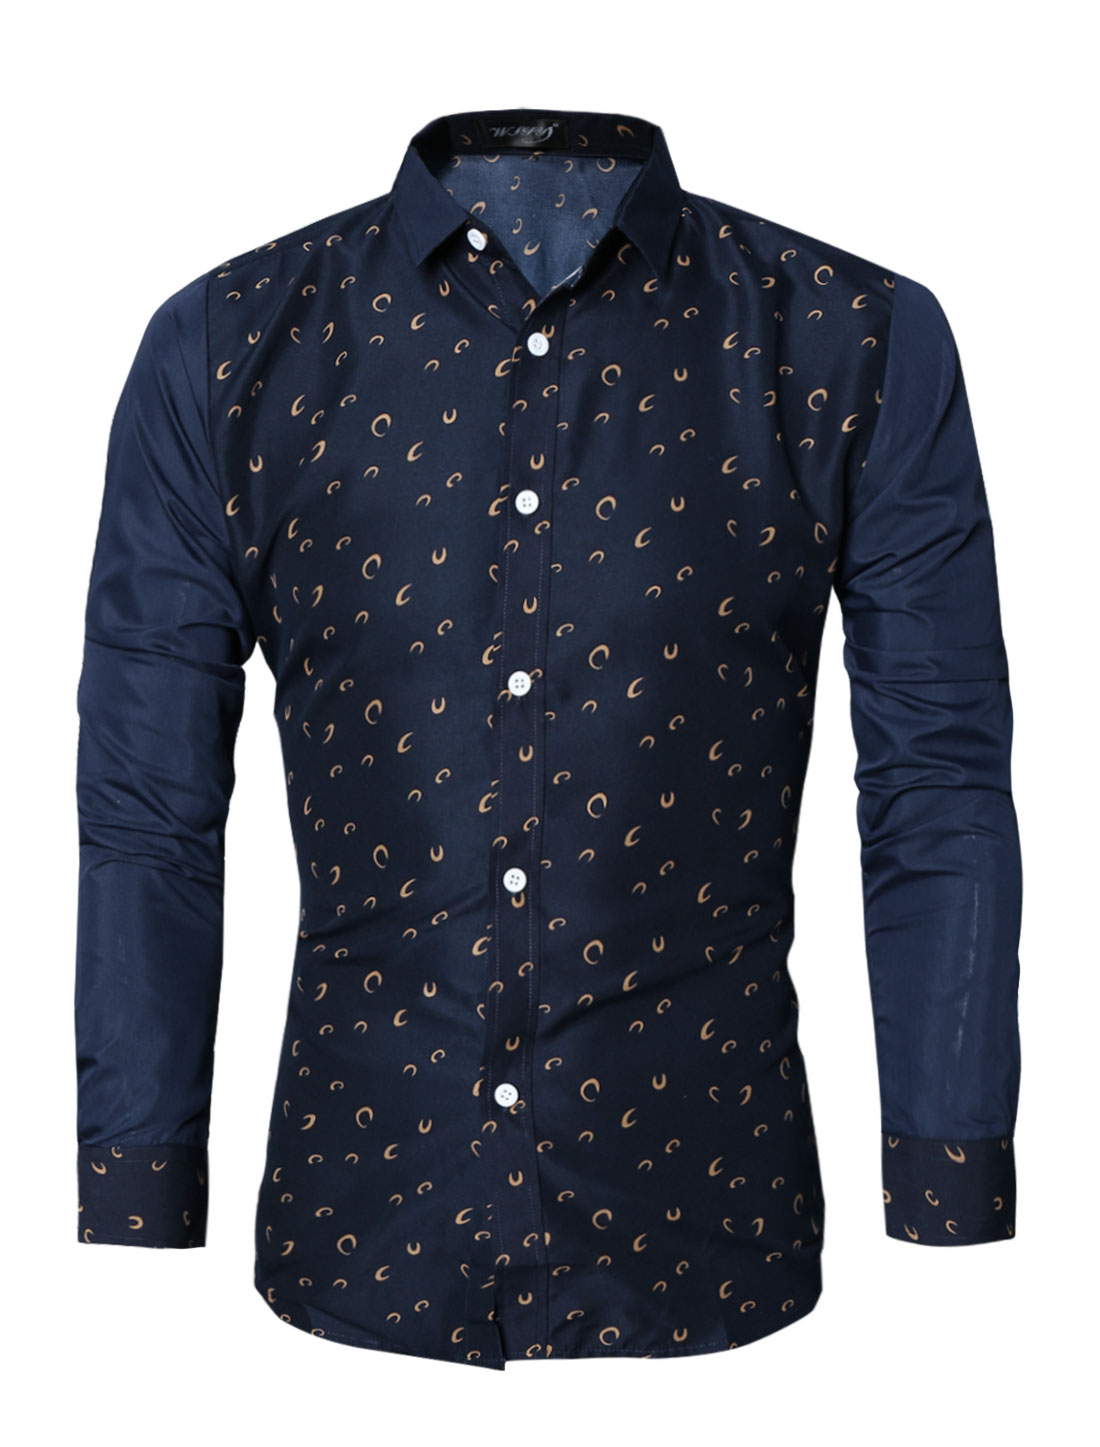 Men Collared Long Sleeves Novelty Slim Fit Shirt Blue M